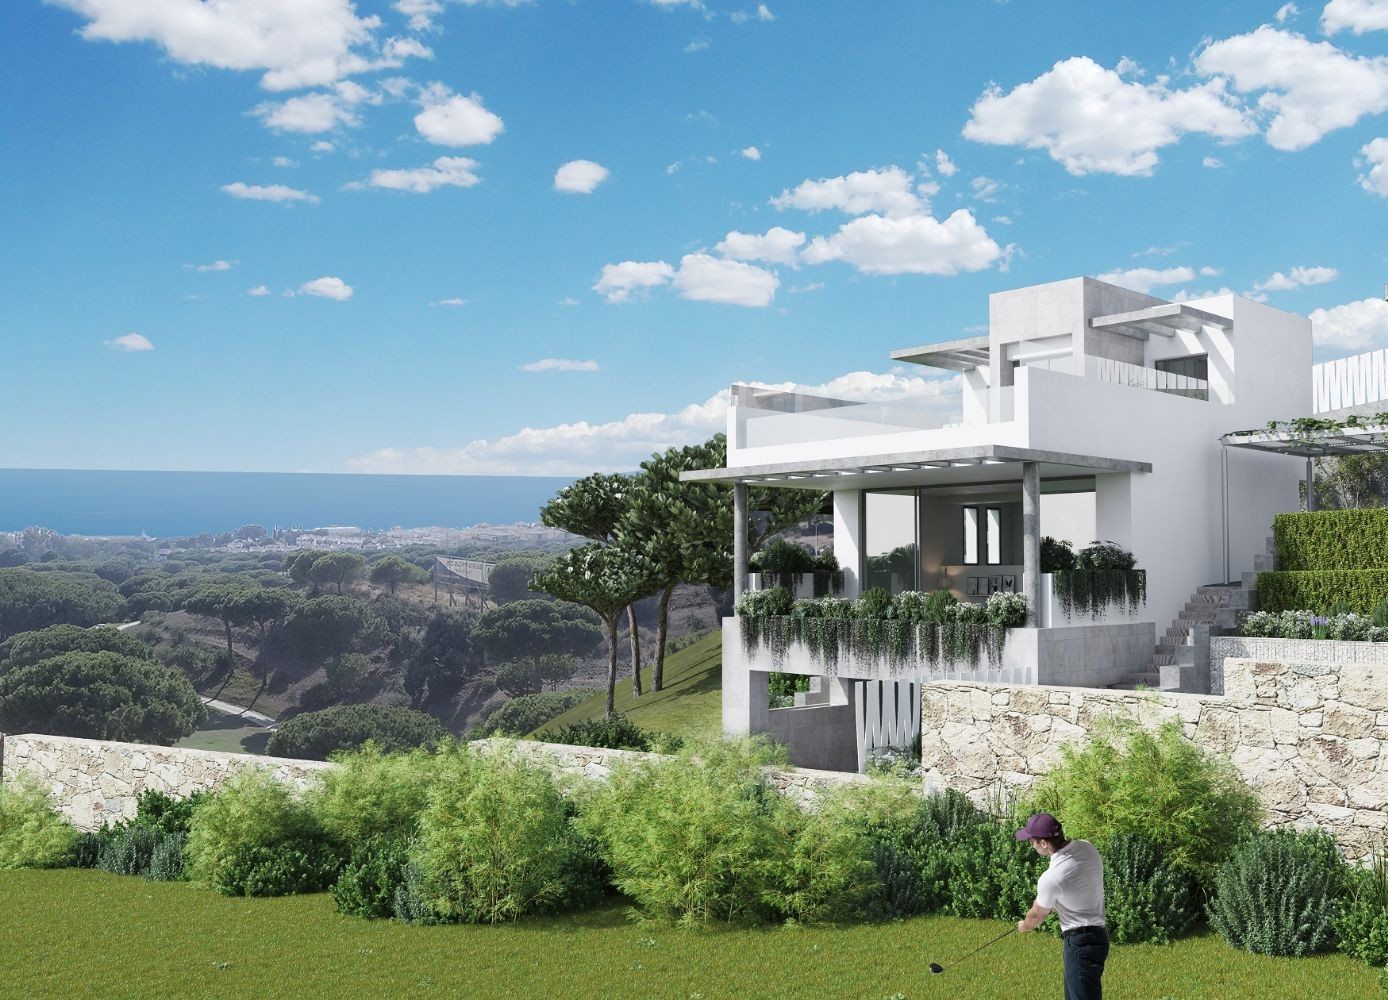 Exclusive Residential Complex with Sea Views in Lexington Realty